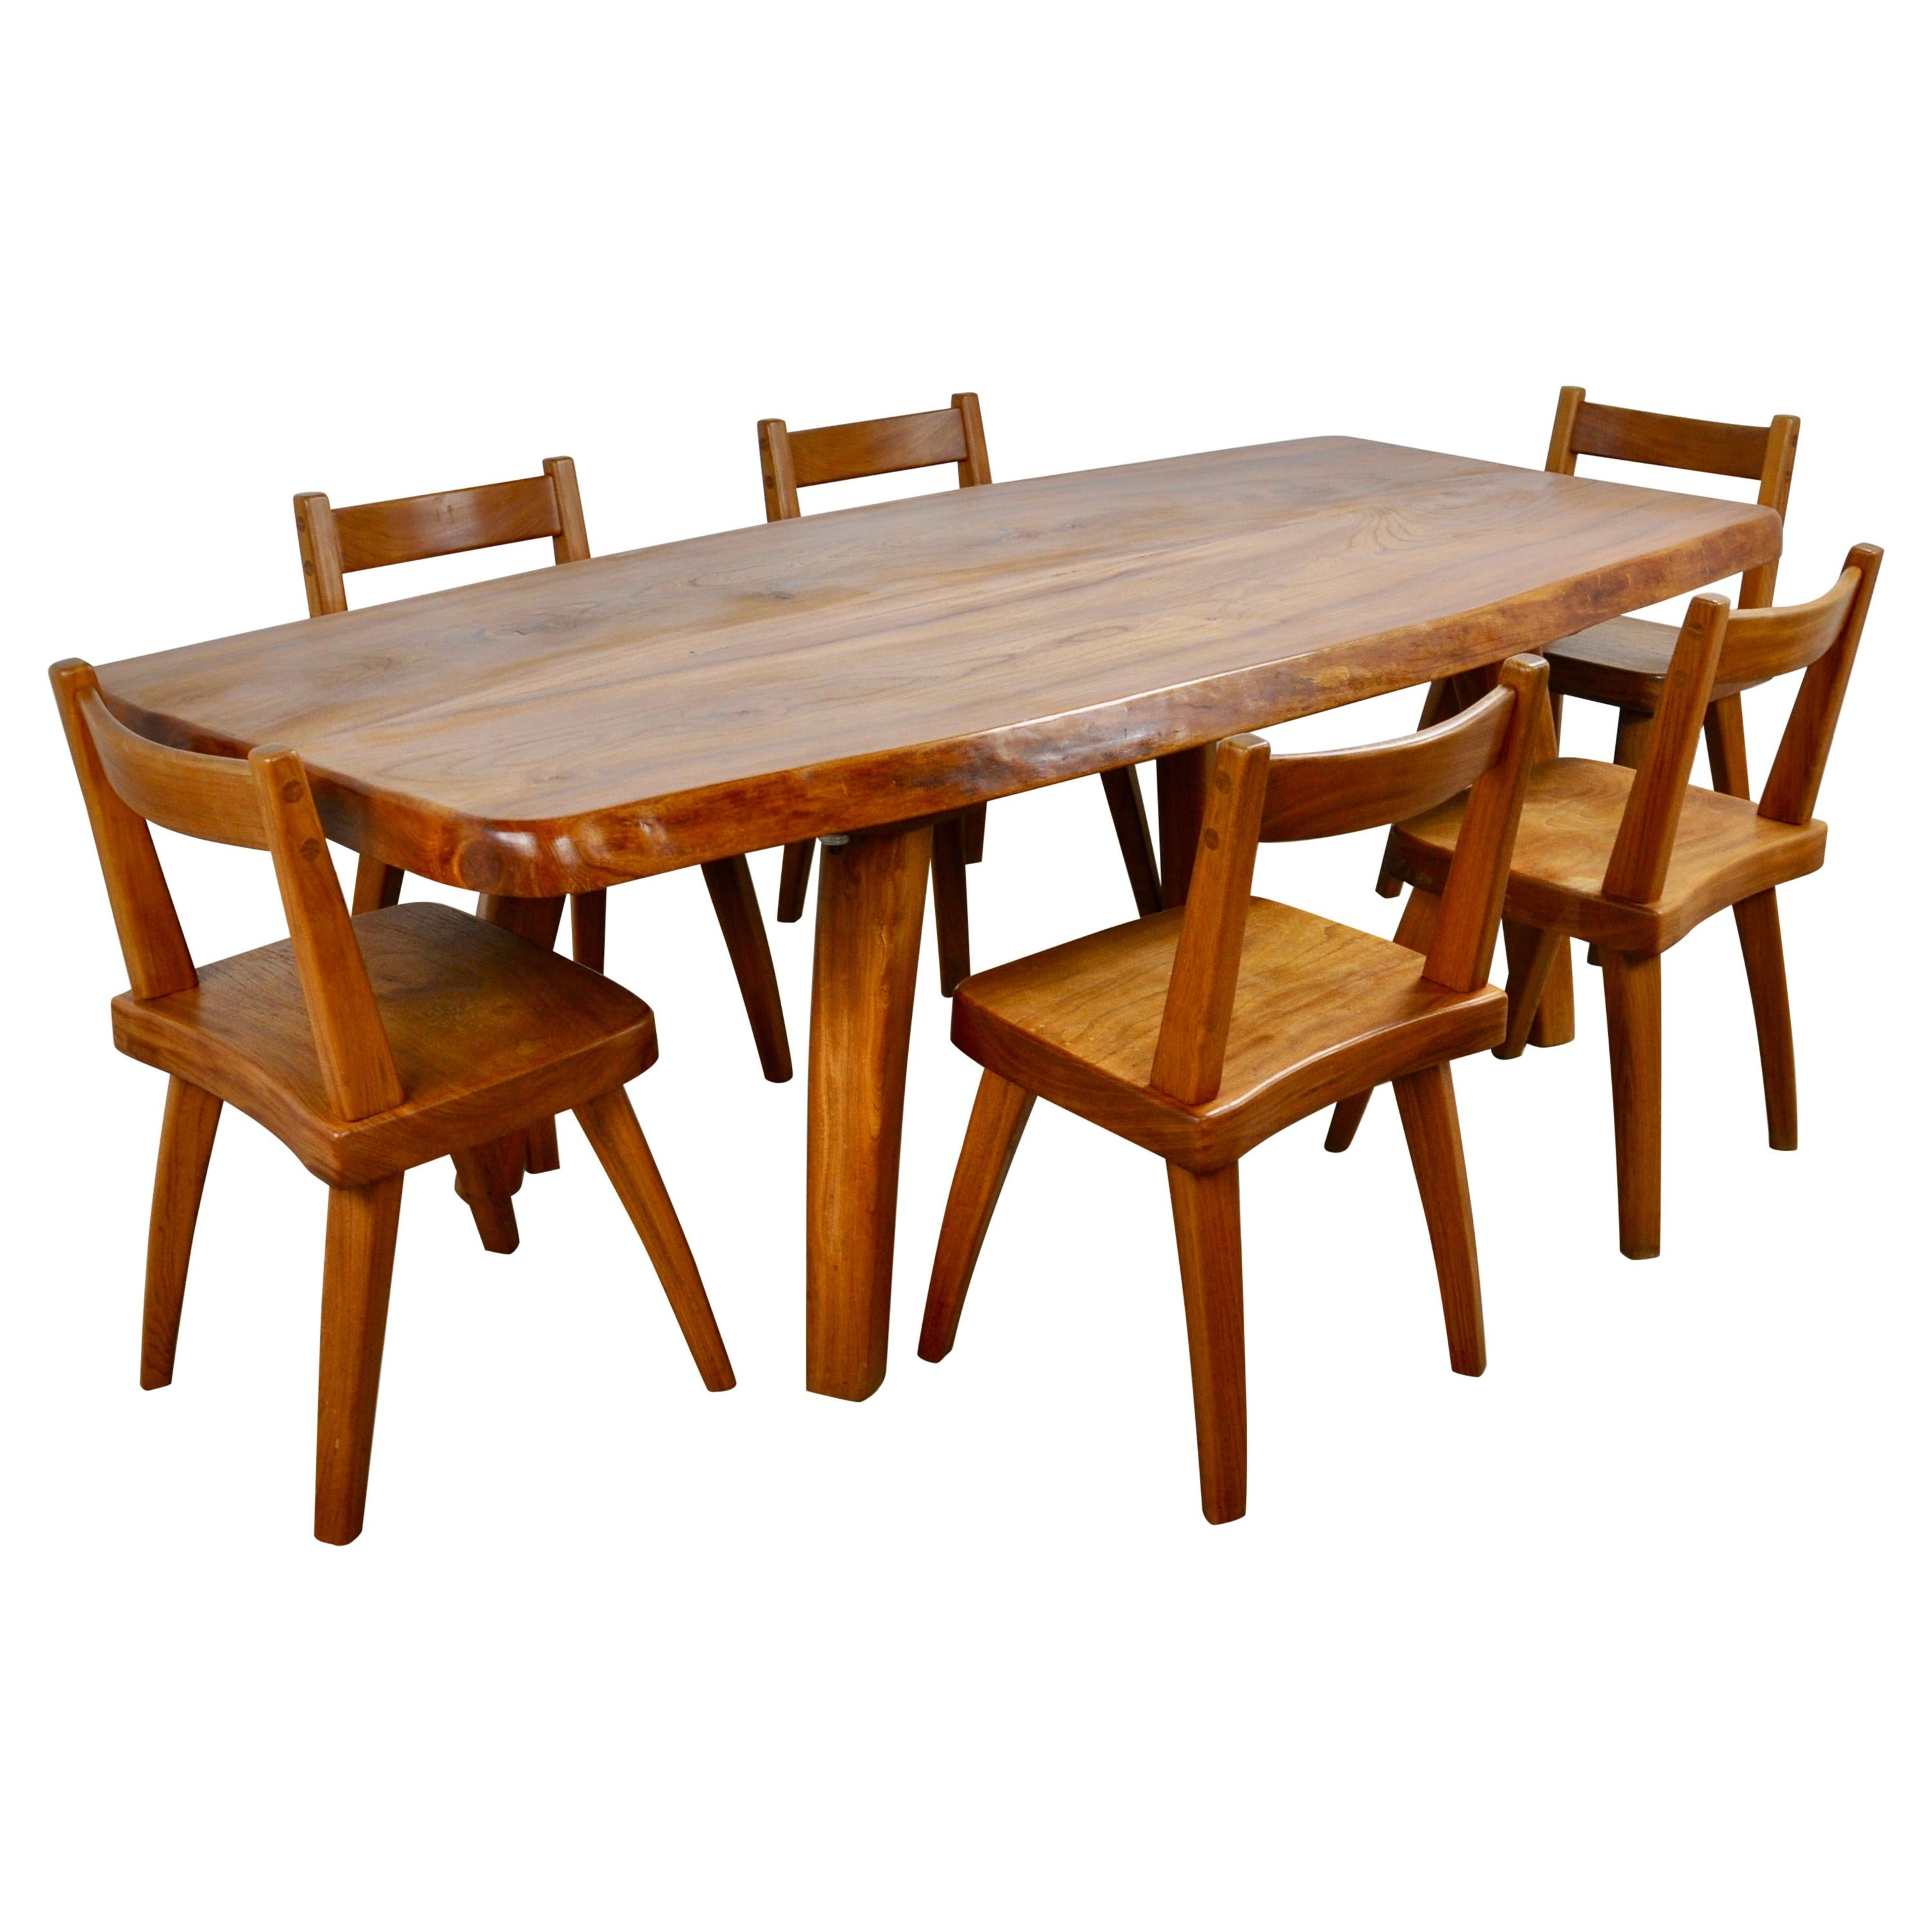 Elm Dining Table and Six Elm Chairs, 1960s